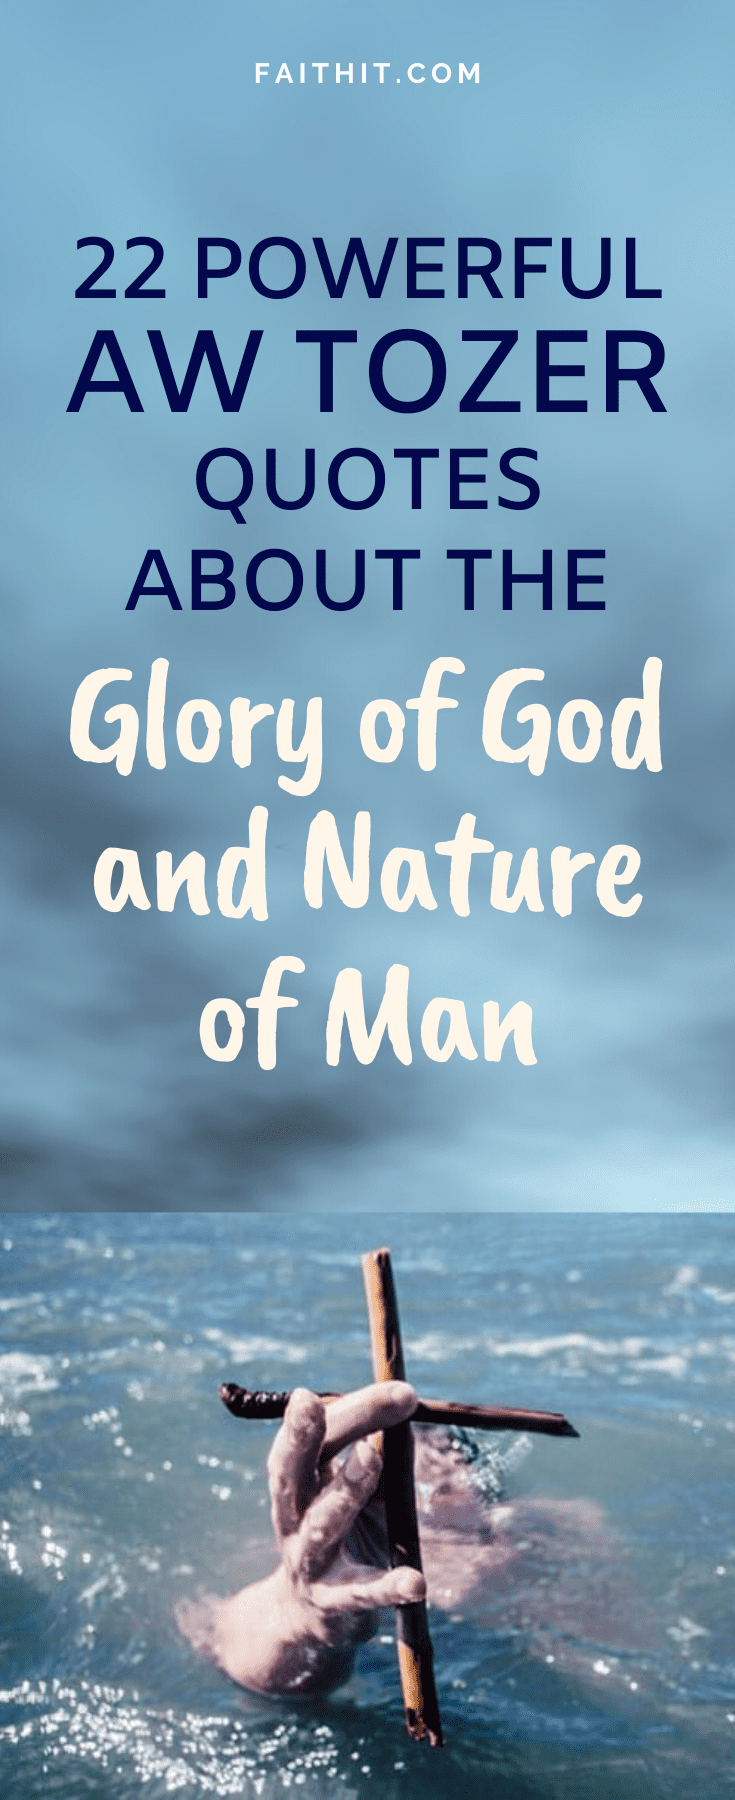 powerful aw tozer quotes about the glory of god and nature of